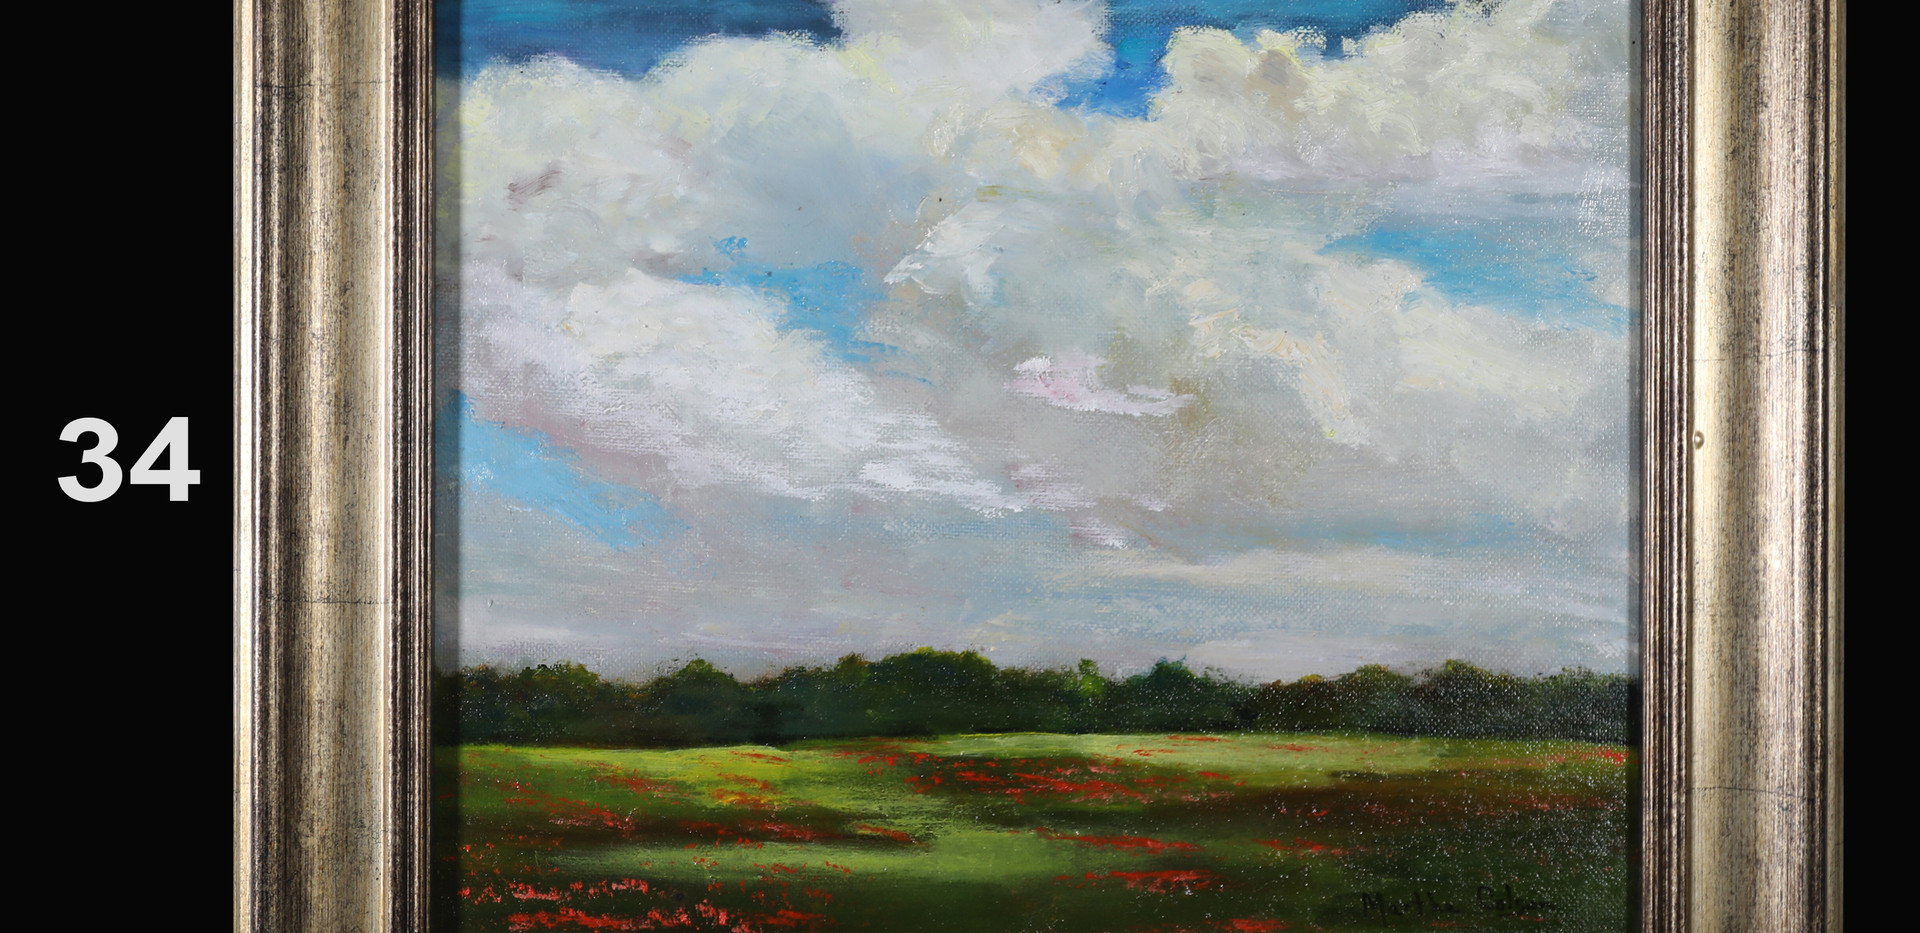 34. Wide Open Spaces